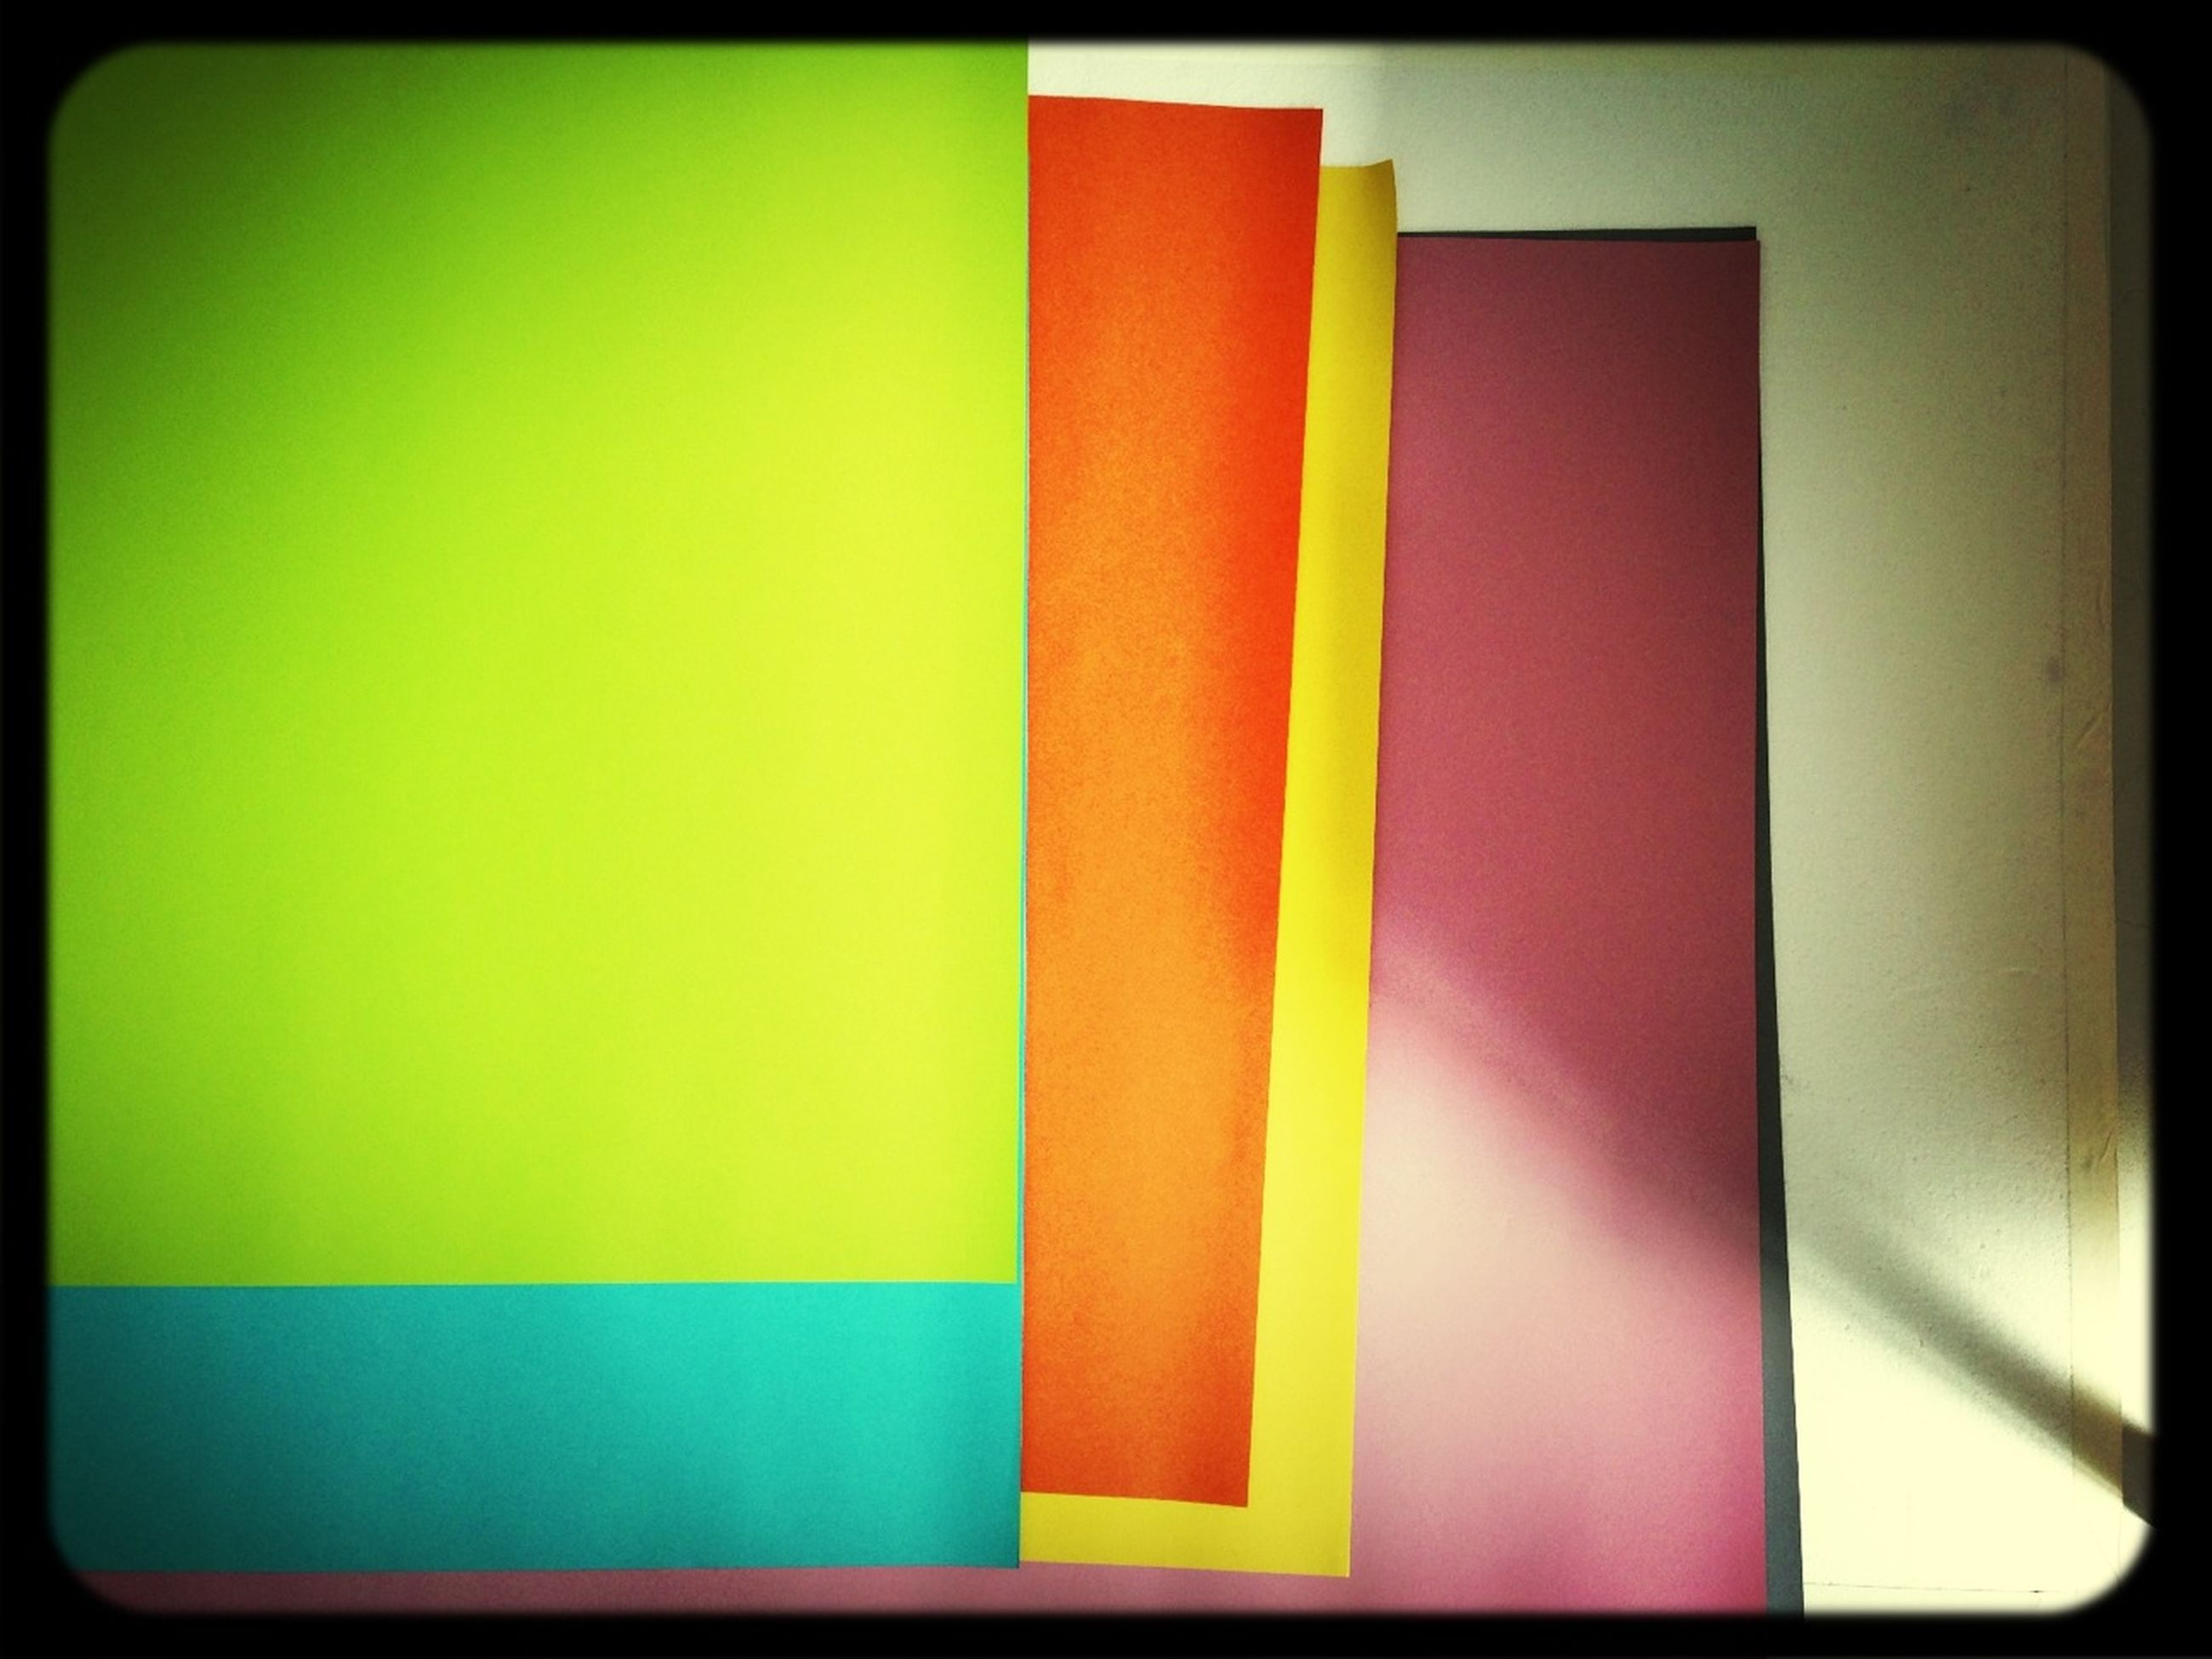 transfer print, auto post production filter, indoors, multi colored, close-up, pattern, still life, wall - building feature, yellow, no people, colorful, red, in a row, striped, textile, wall, copy space, white color, art and craft, variation